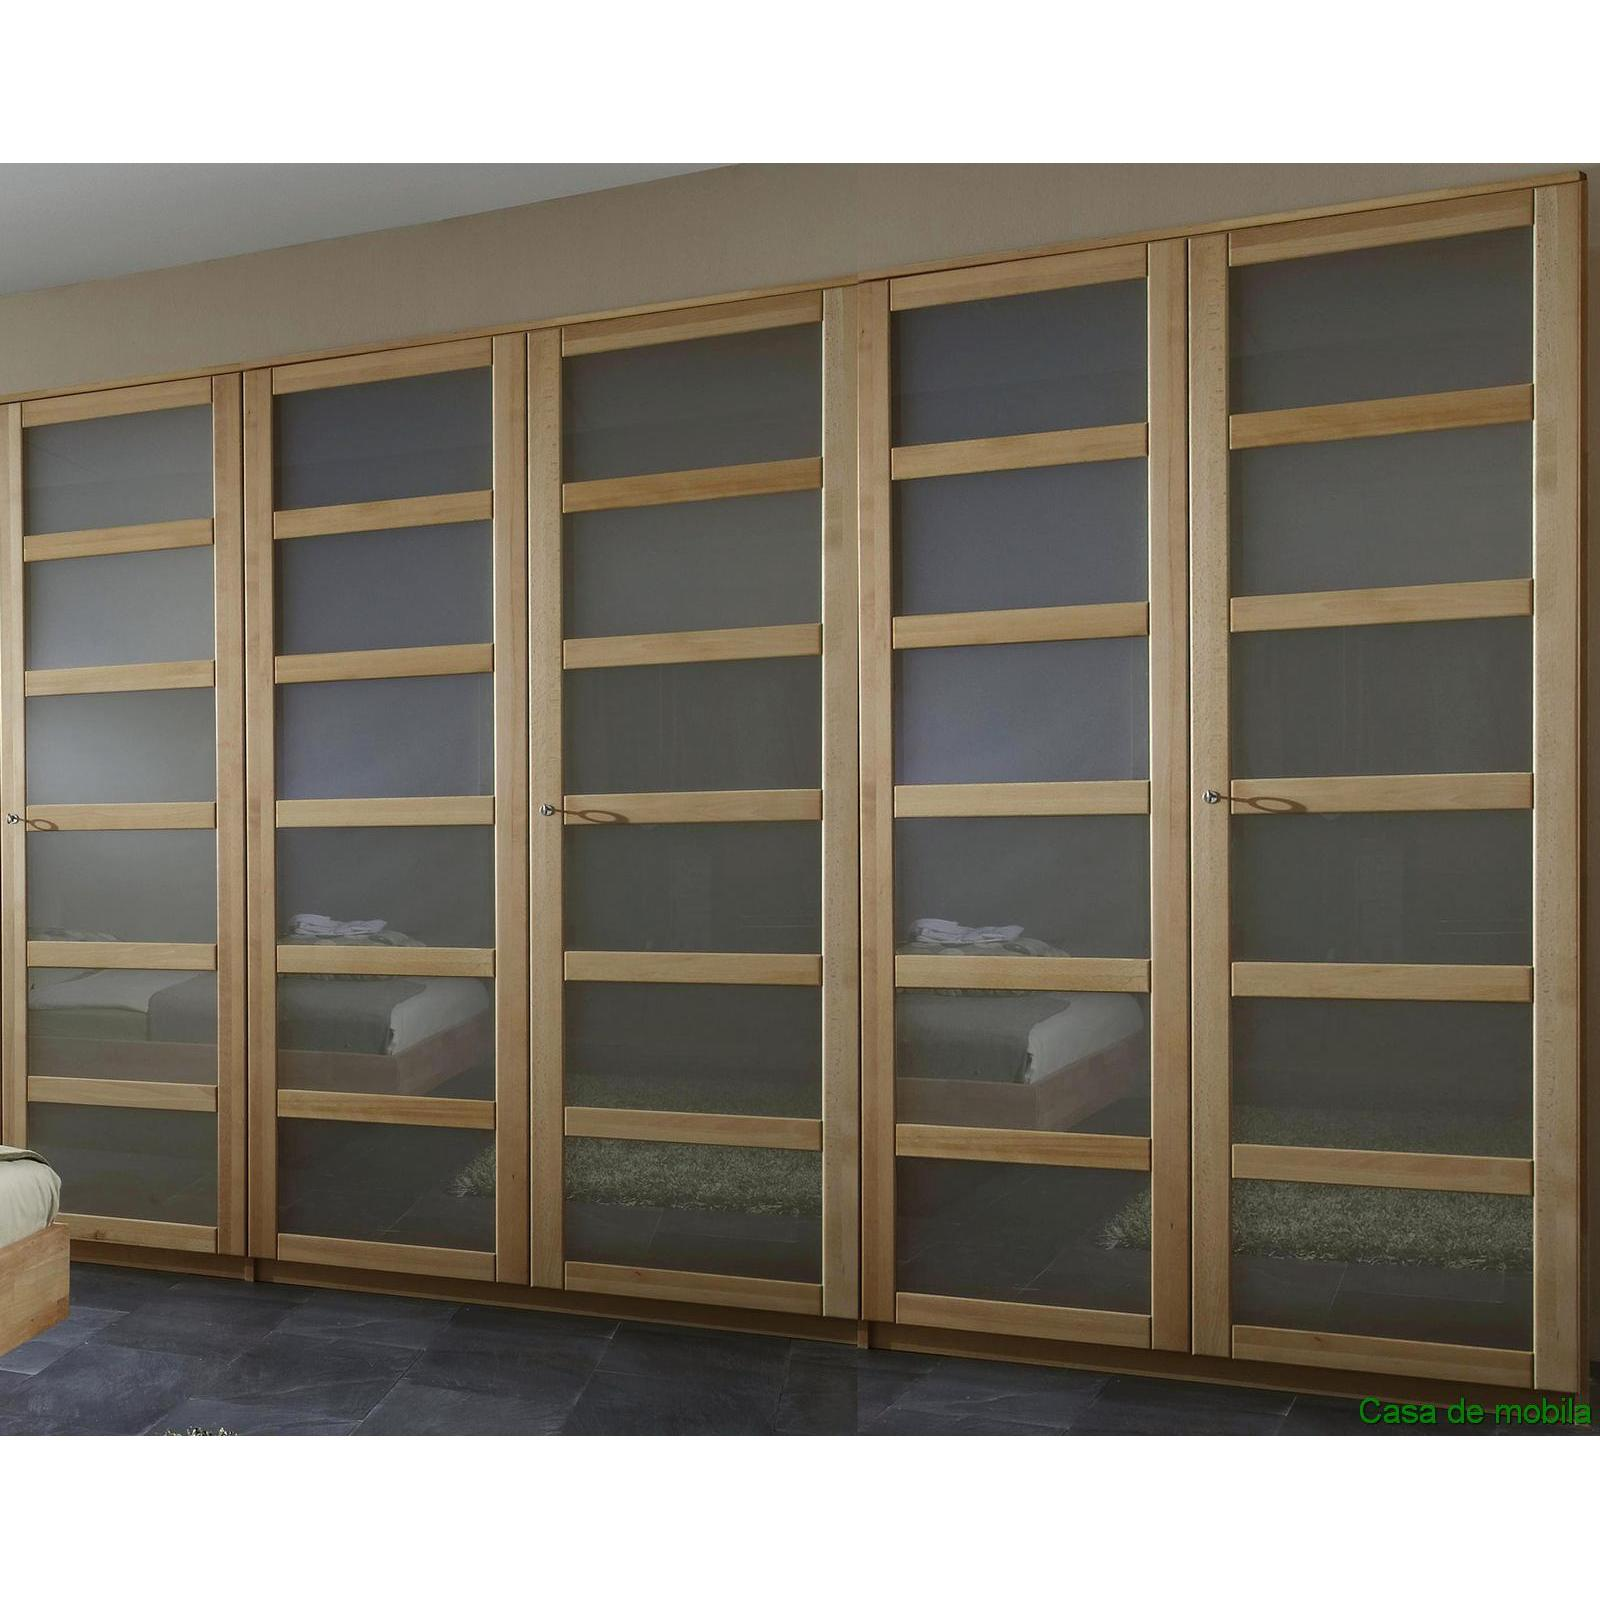 massivholz kleiderschrank 5 t rig schlafzimmerschrank buche massiv ge lt front3 ebay. Black Bedroom Furniture Sets. Home Design Ideas